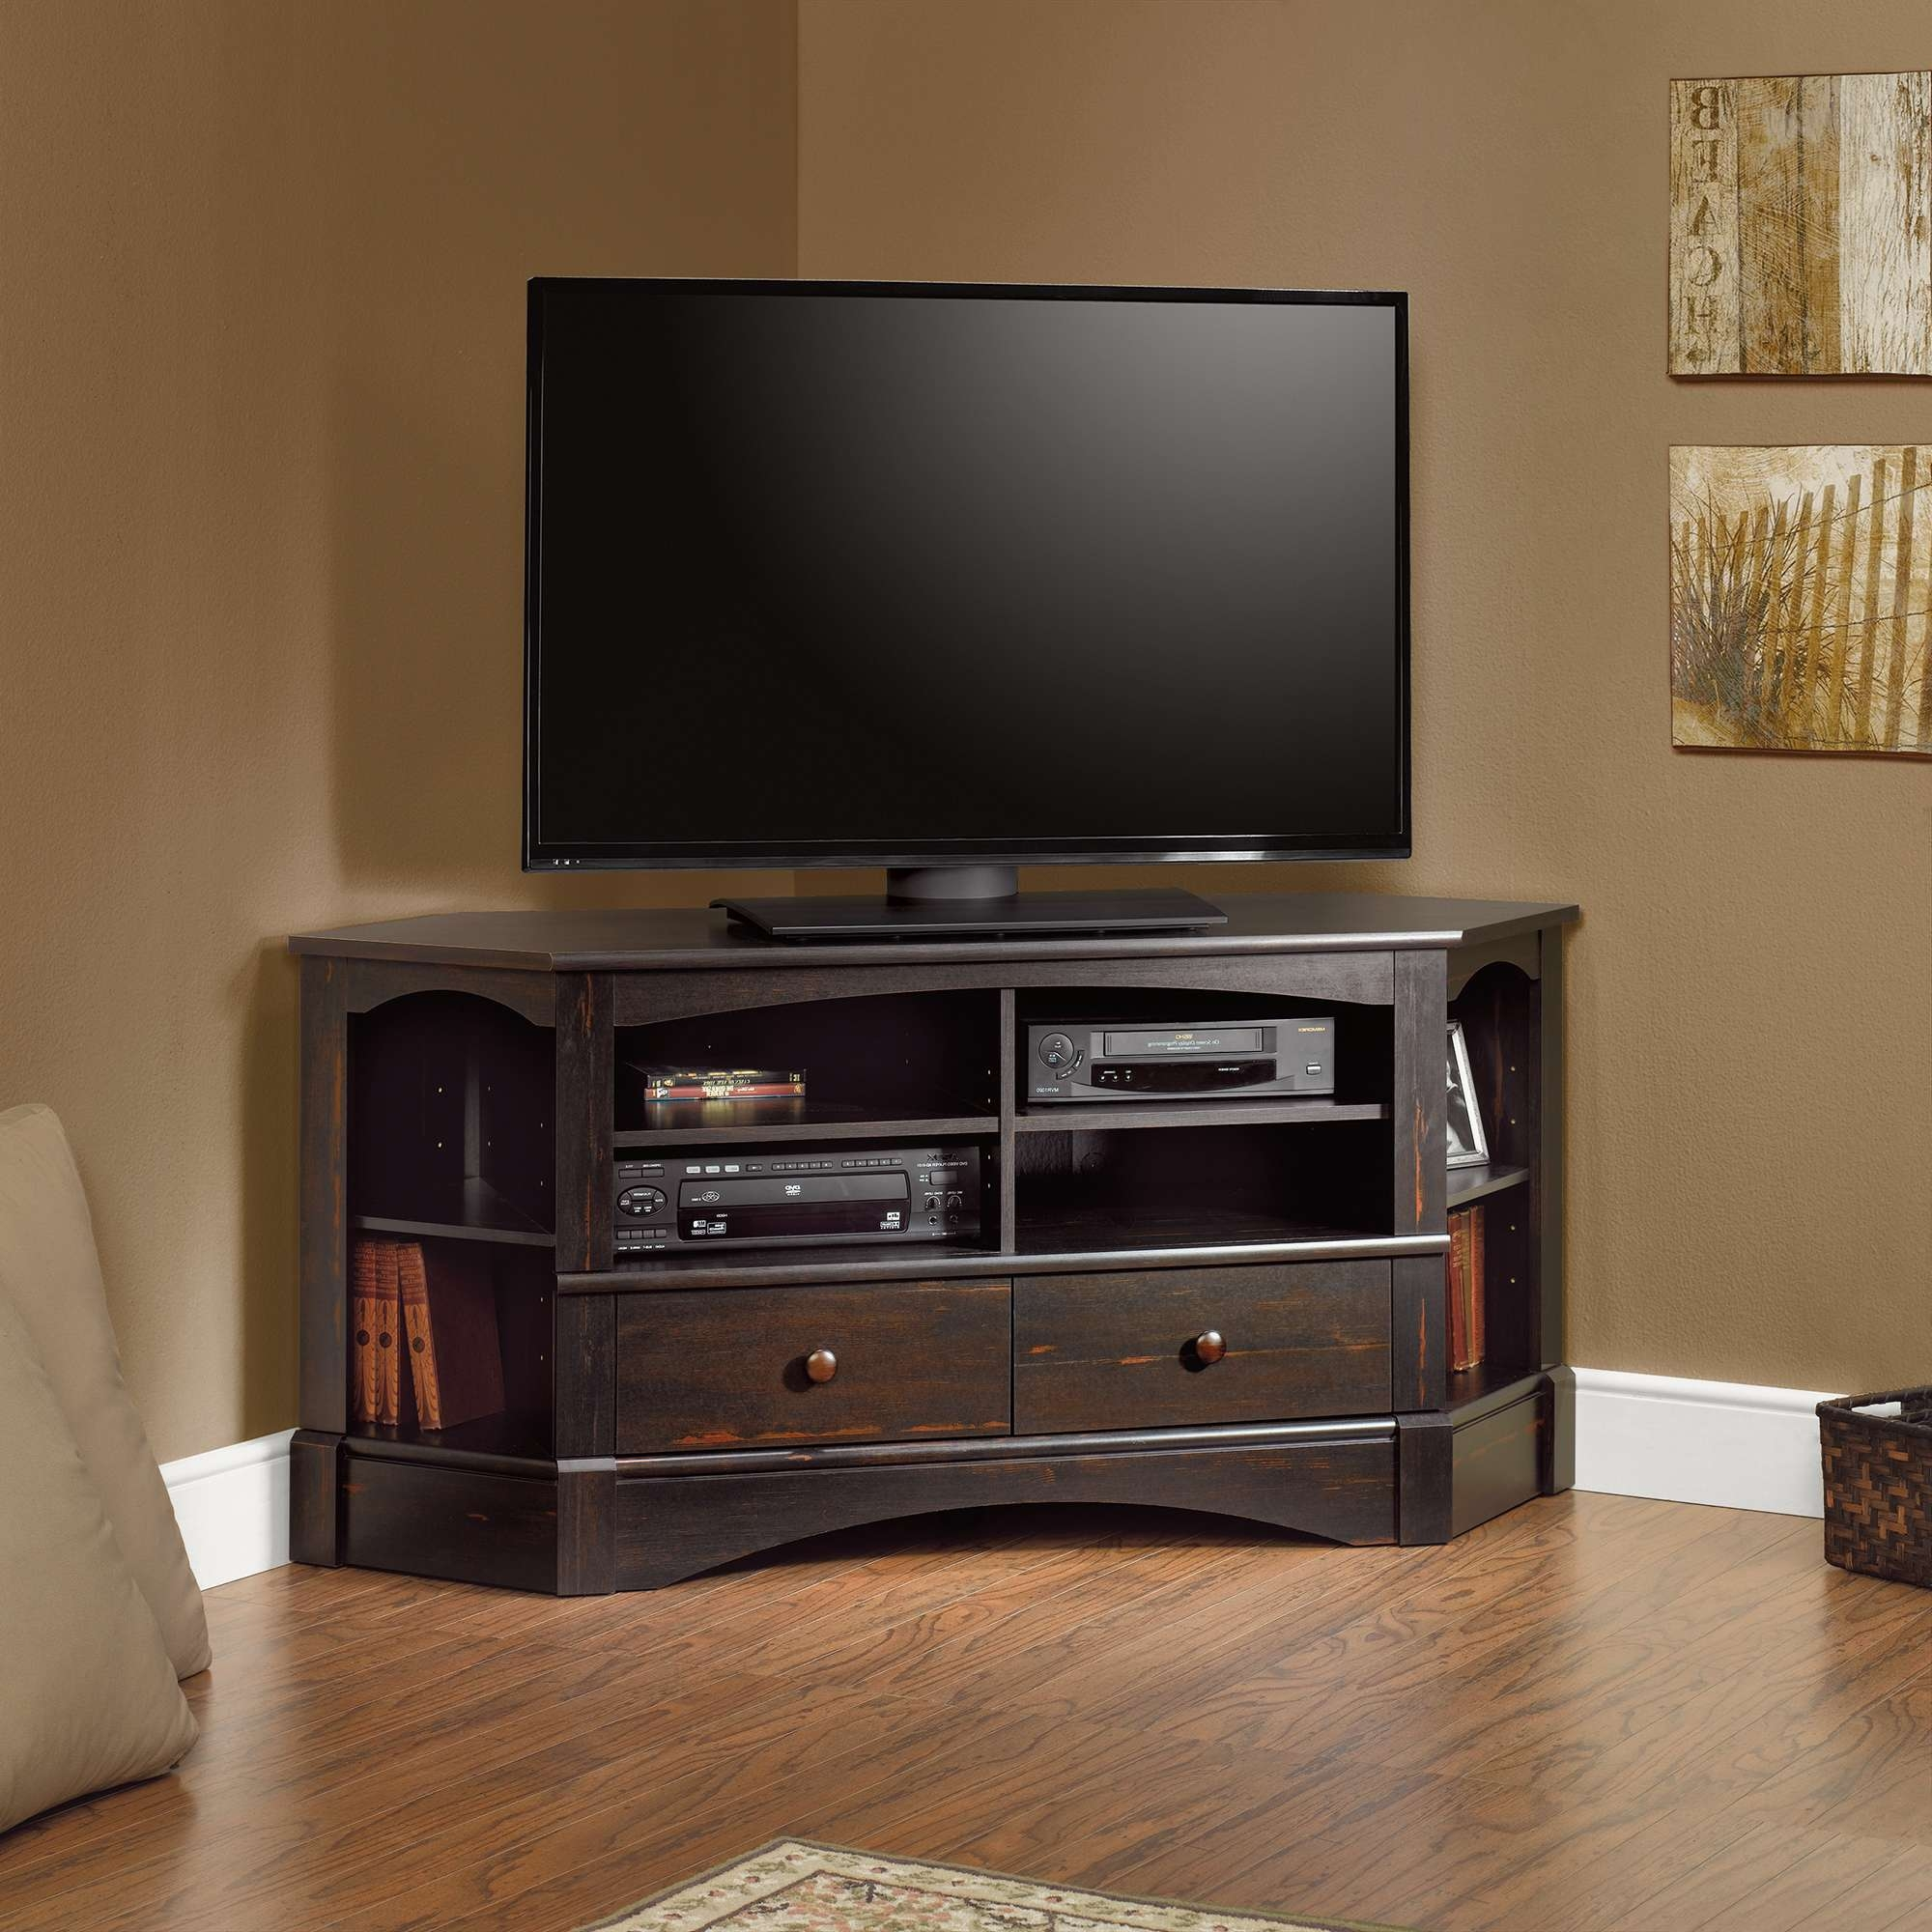 Tv : 41 Stunning 40 Inch Tv Stand Wood Photos Concept Stunning Pertaining To Corner Tv Stands 40 Inch (View 9 of 20)